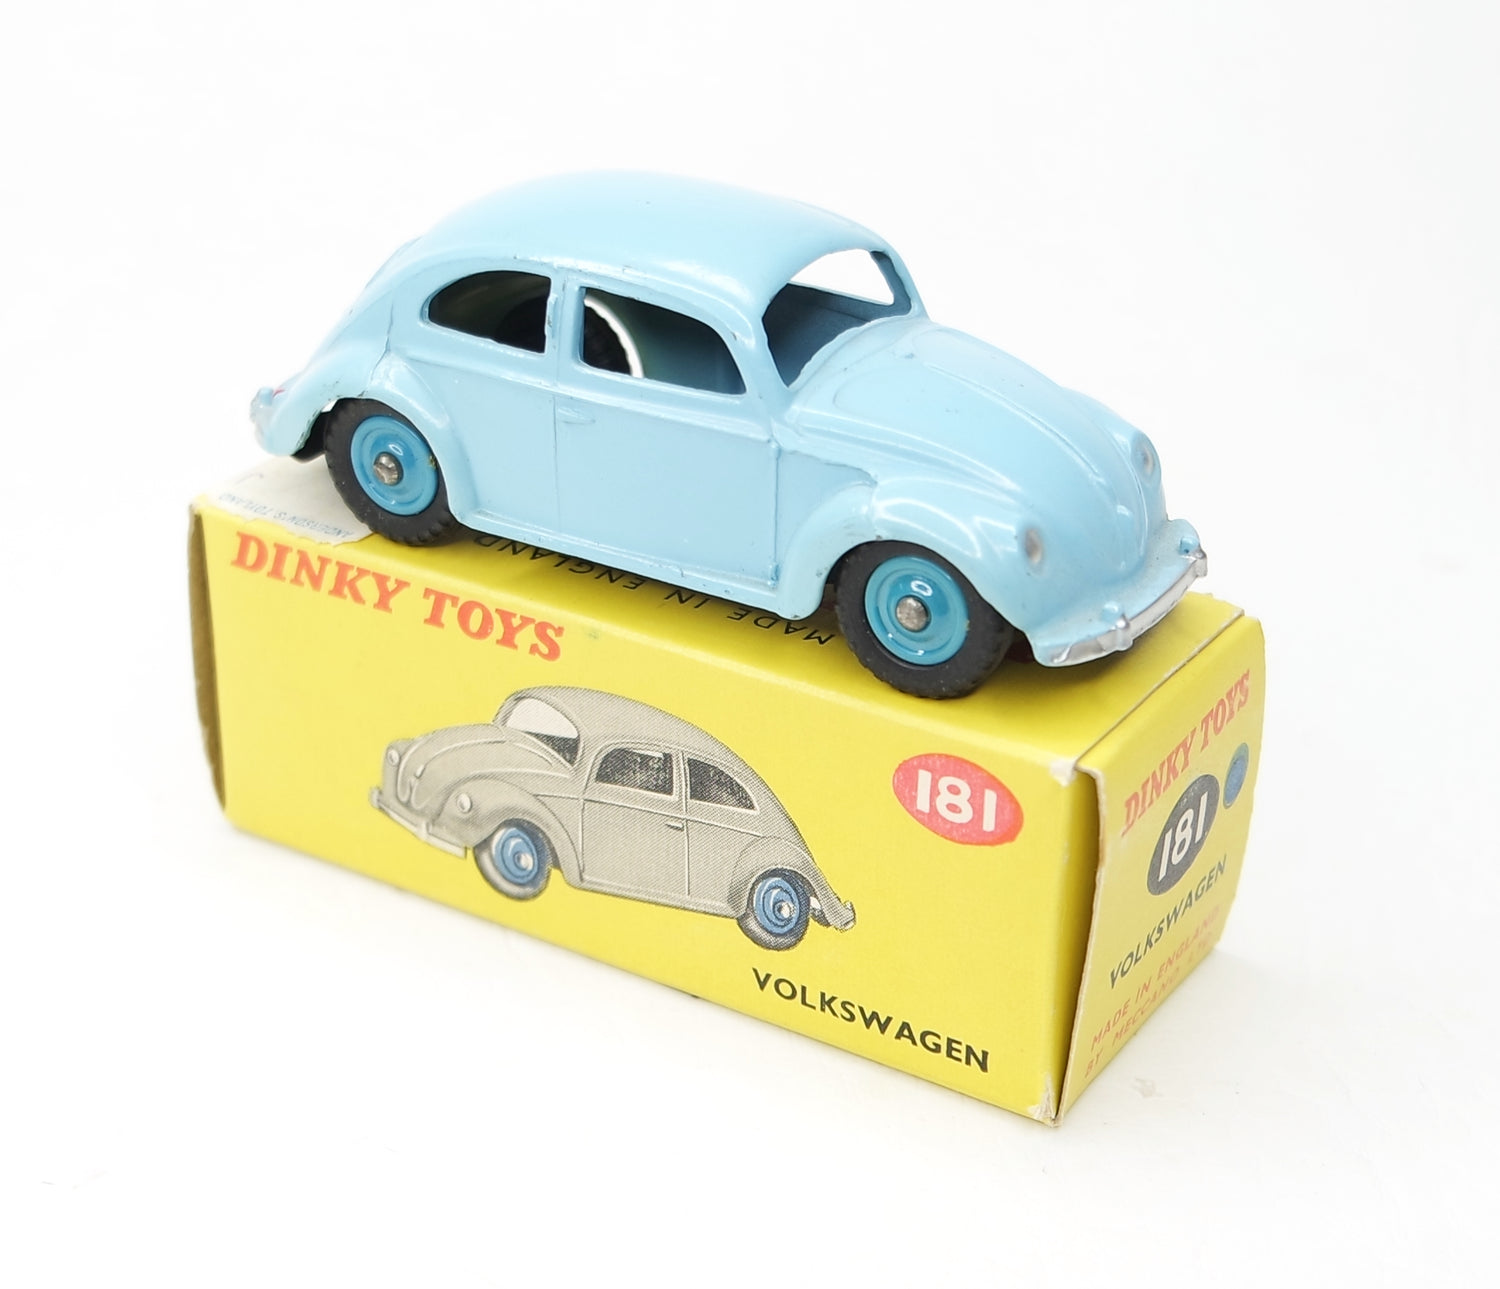 Dinky toys 181 VW Beetle Virtually Mint/Boxed (Plastic hubs).